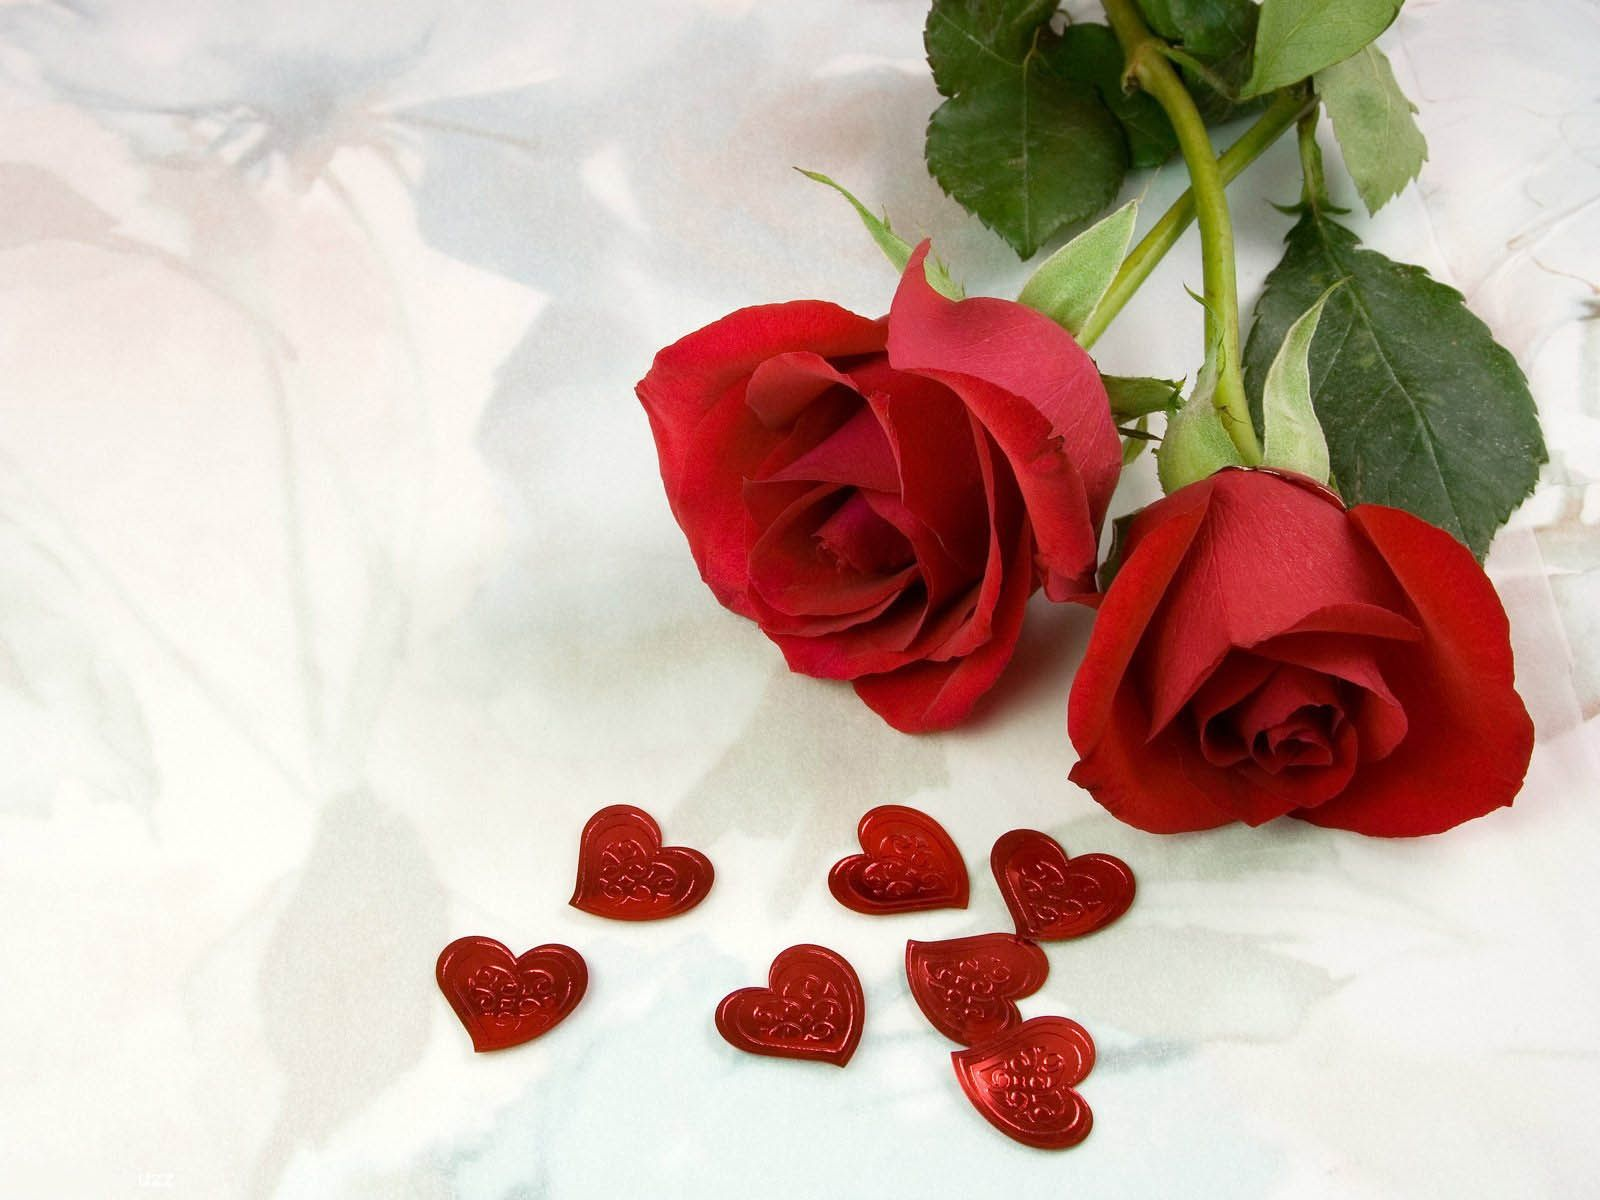 images of love rose